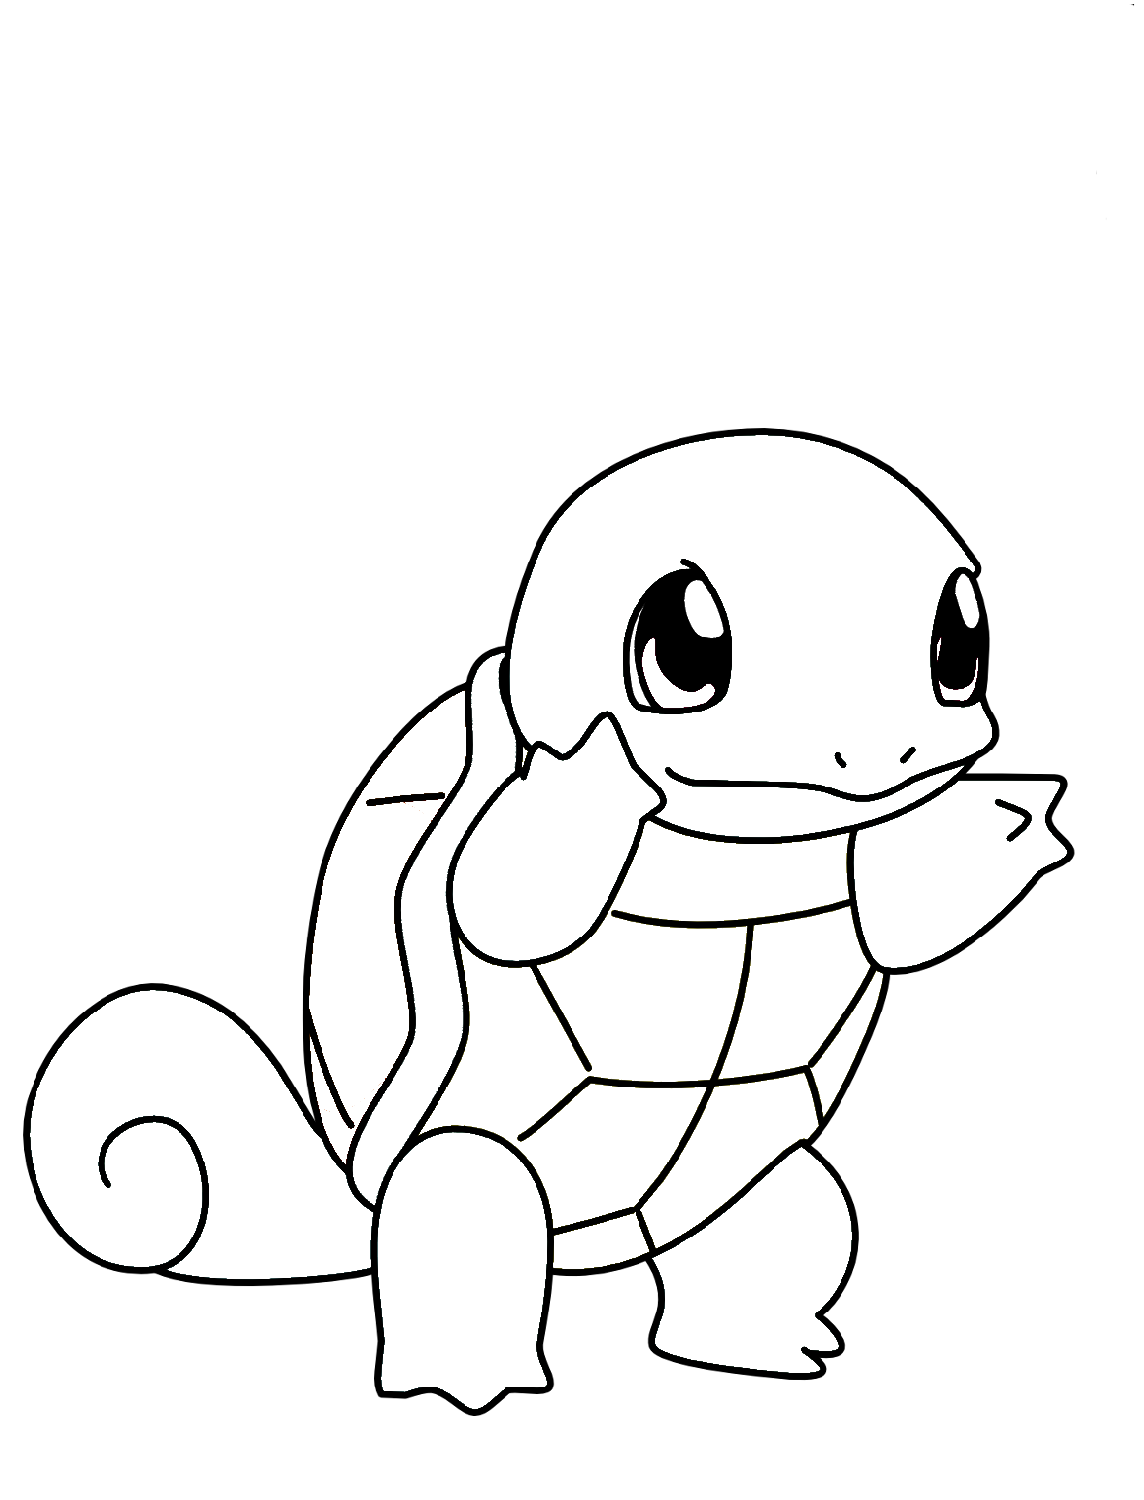 Squirtle Coloring Pages Pokemon 2019 Educative Printable Pokemon Coloring Pages Pokemon Coloring Coloring Pages